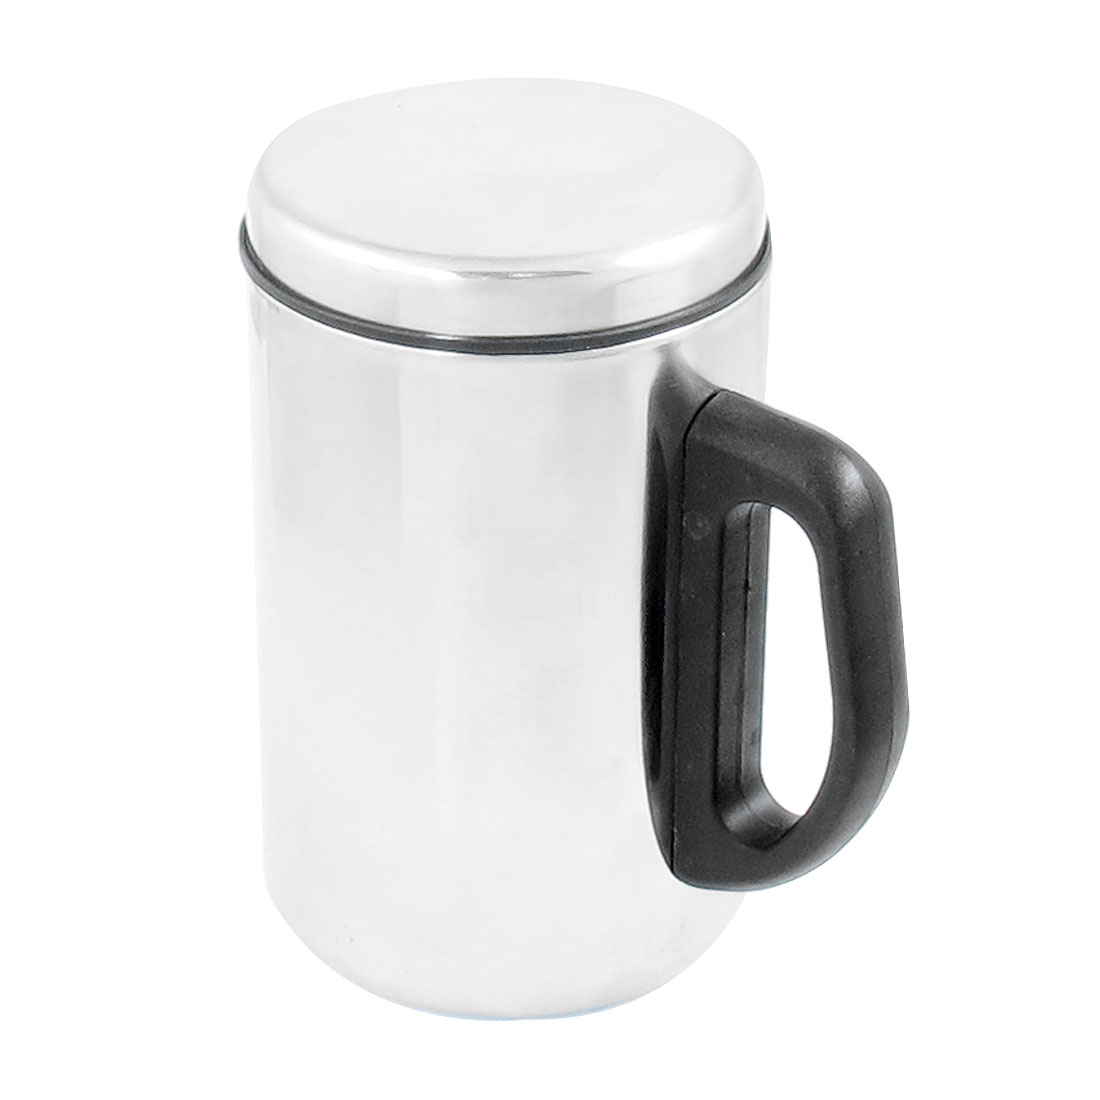 Silver Tone Shell Double Stainless Steel Coffee Mug Cup 350ml